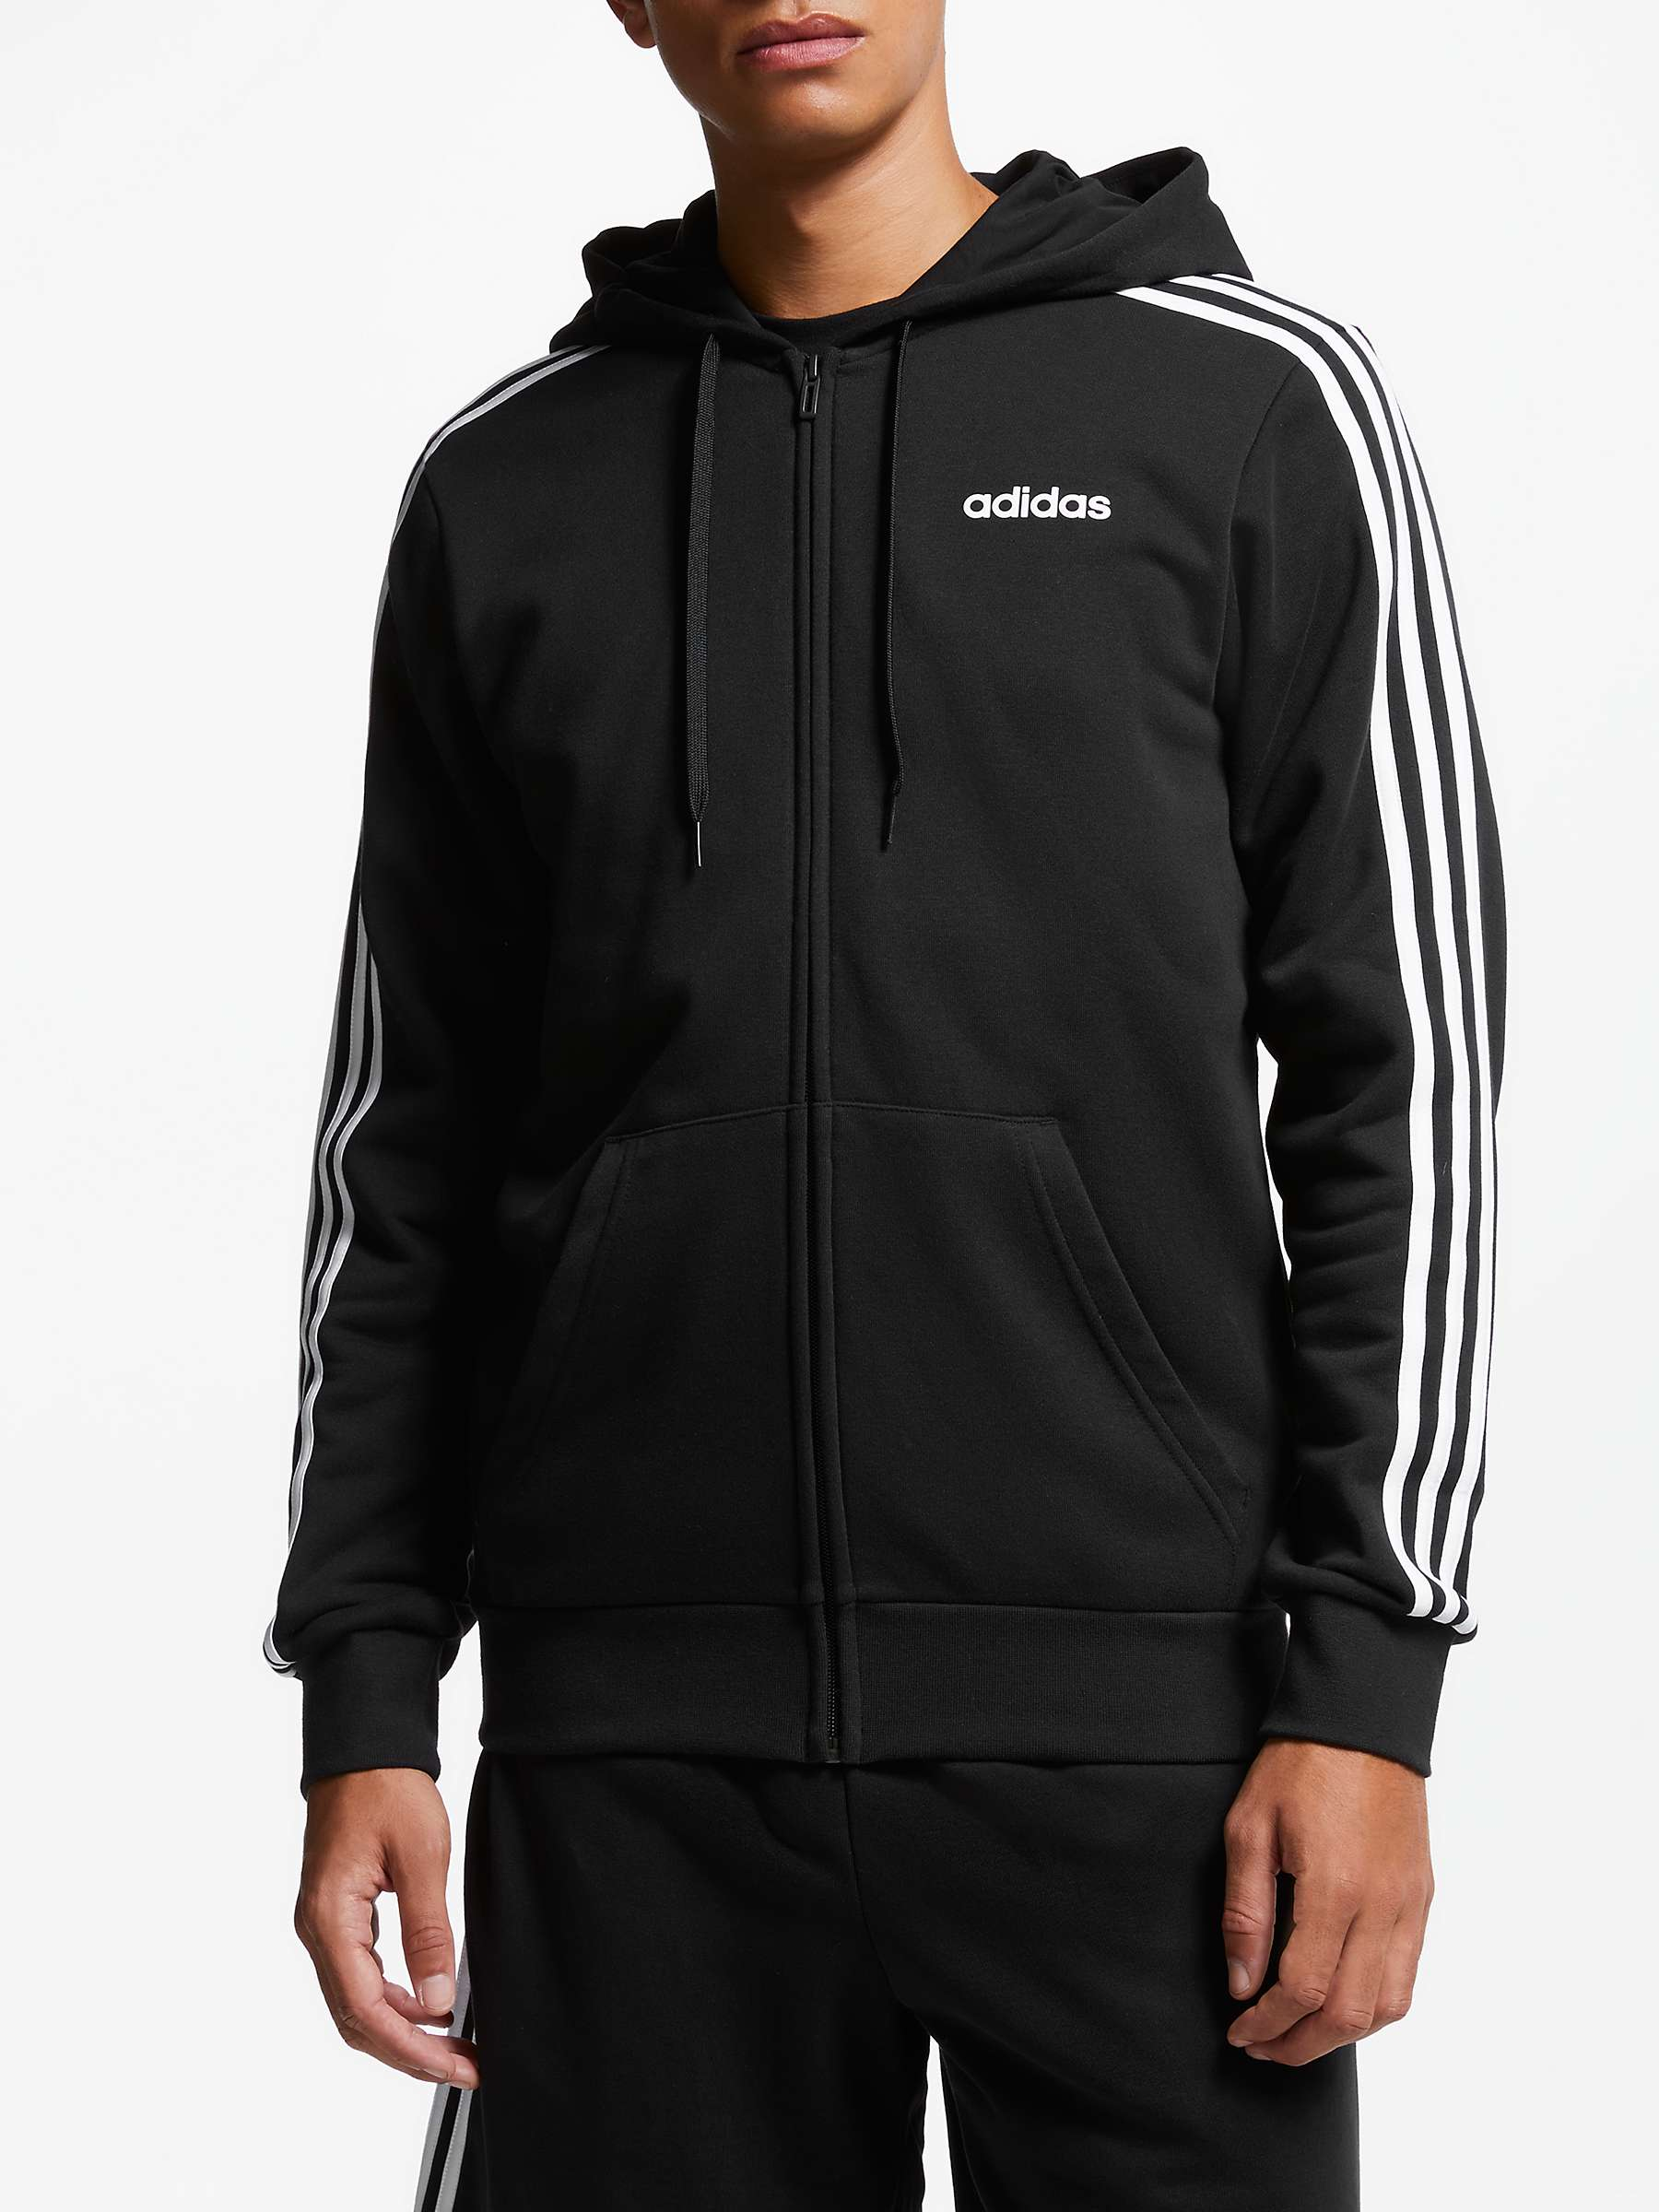 Inkonsekvent ego deposition  adidas Essentials 3-Stripes Hoodie, Black at John Lewis & Partners